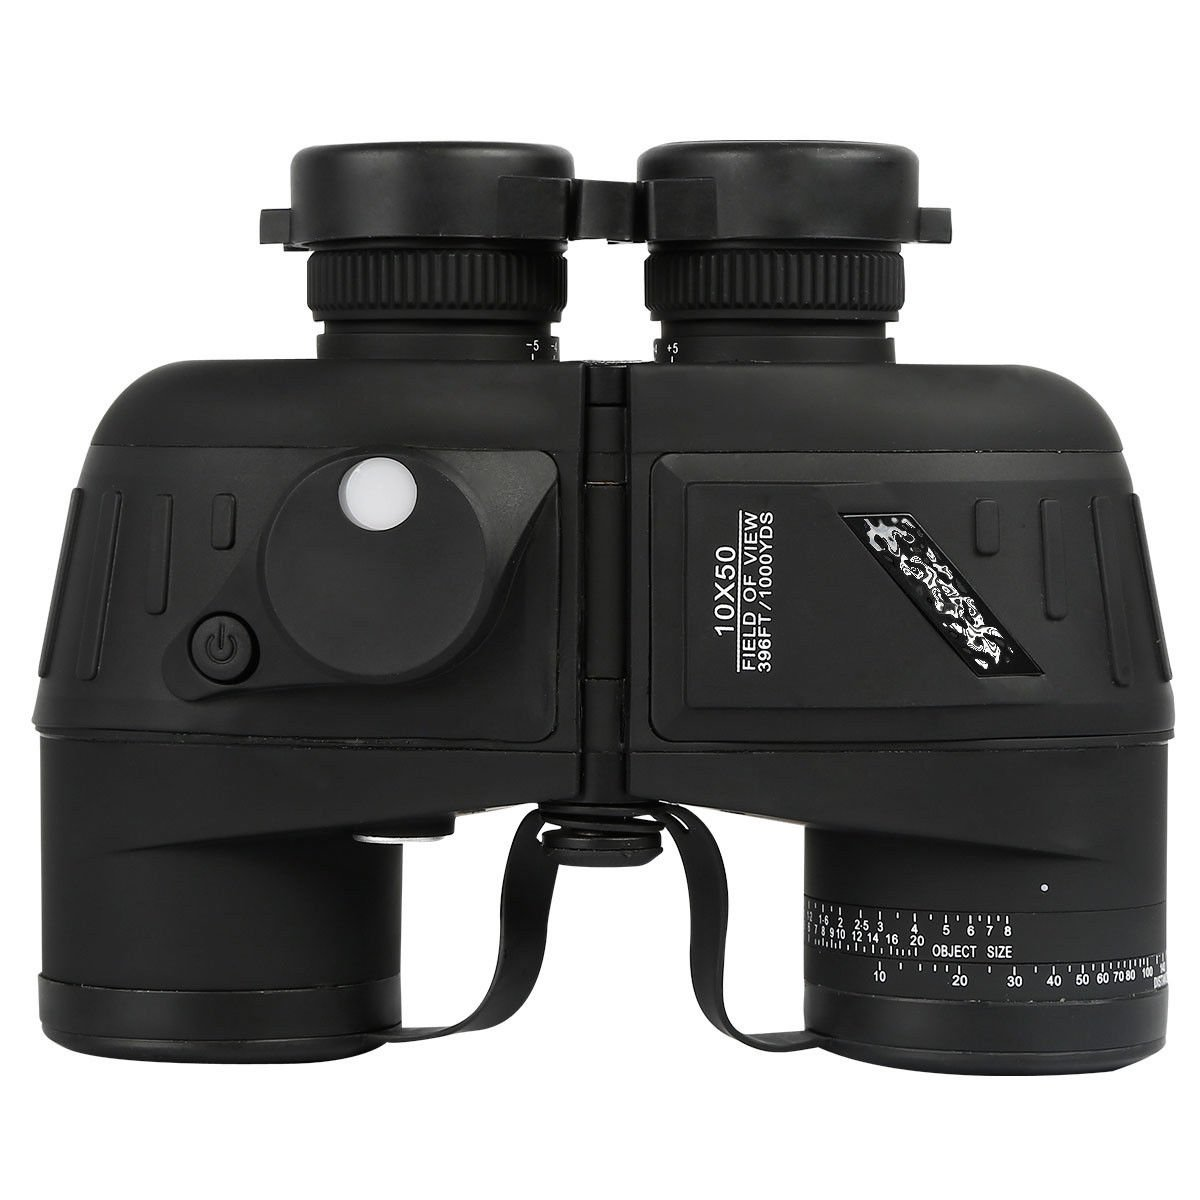 Tengchang 10X50 Military Marine Night Vision Binoculars with Rangefinder Compass